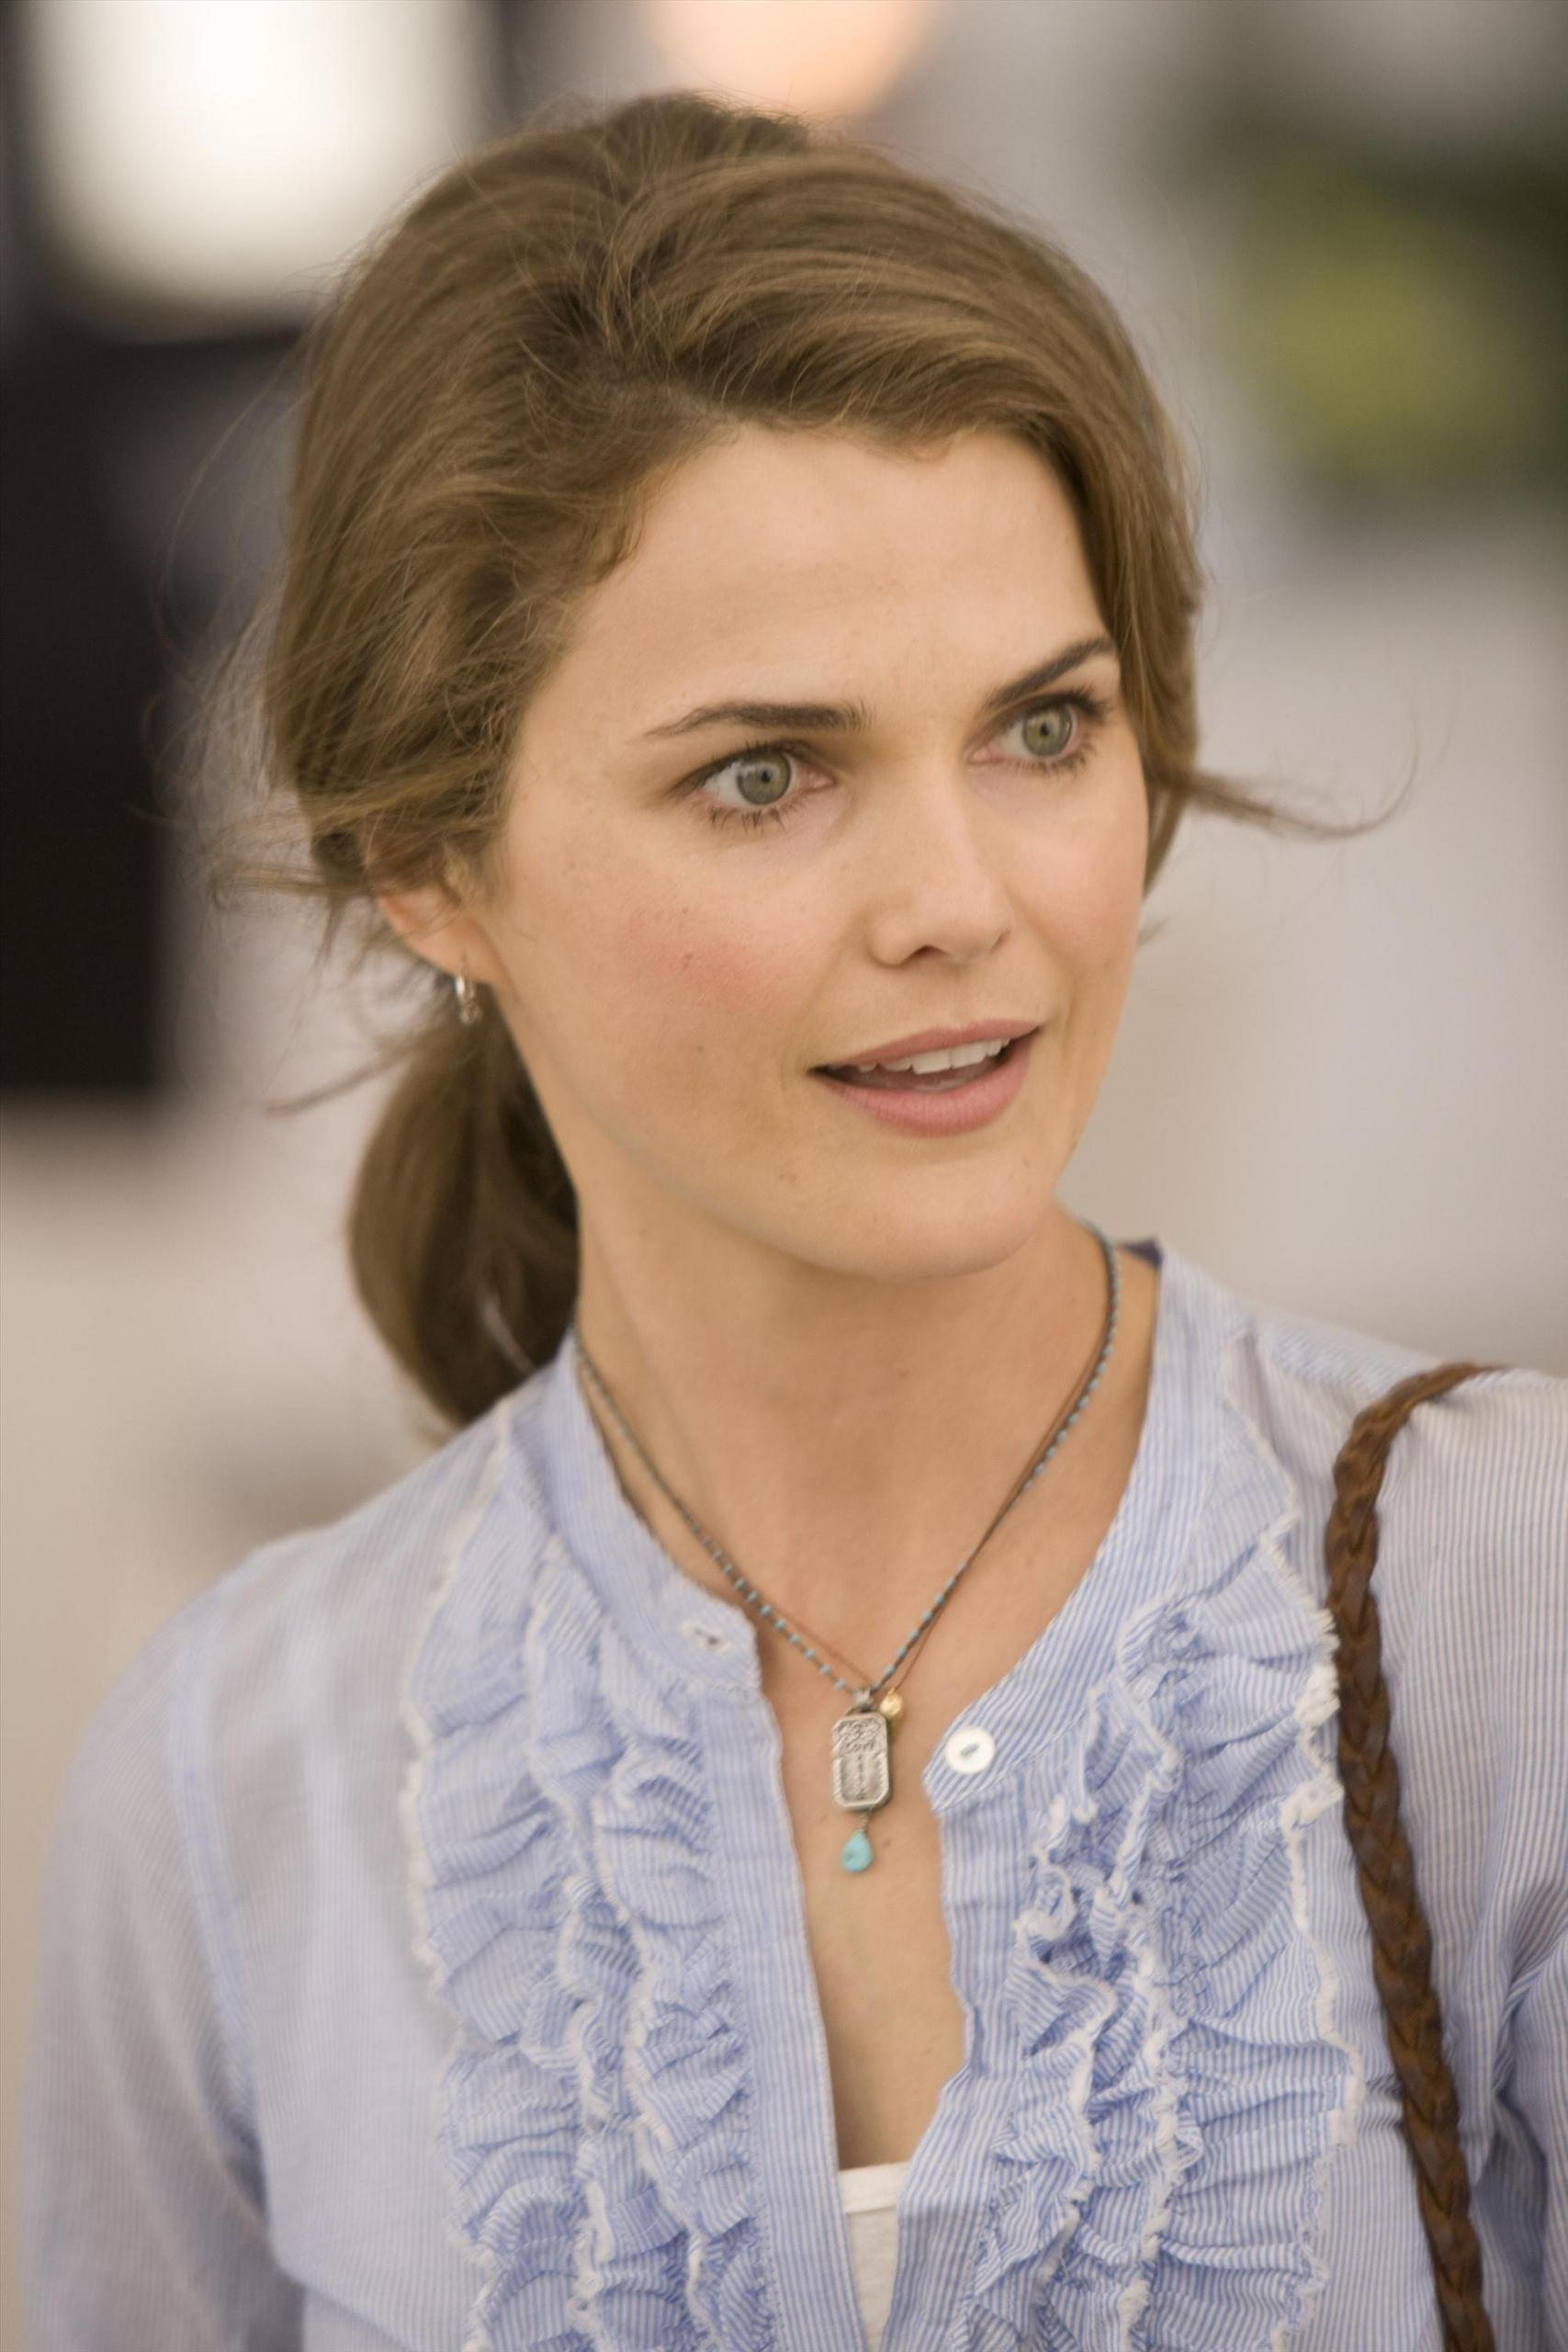 The 41-year old daughter of father David Russell and mother Stephanie Stephens, 163 cm tall Keri Russell in 2018 photo